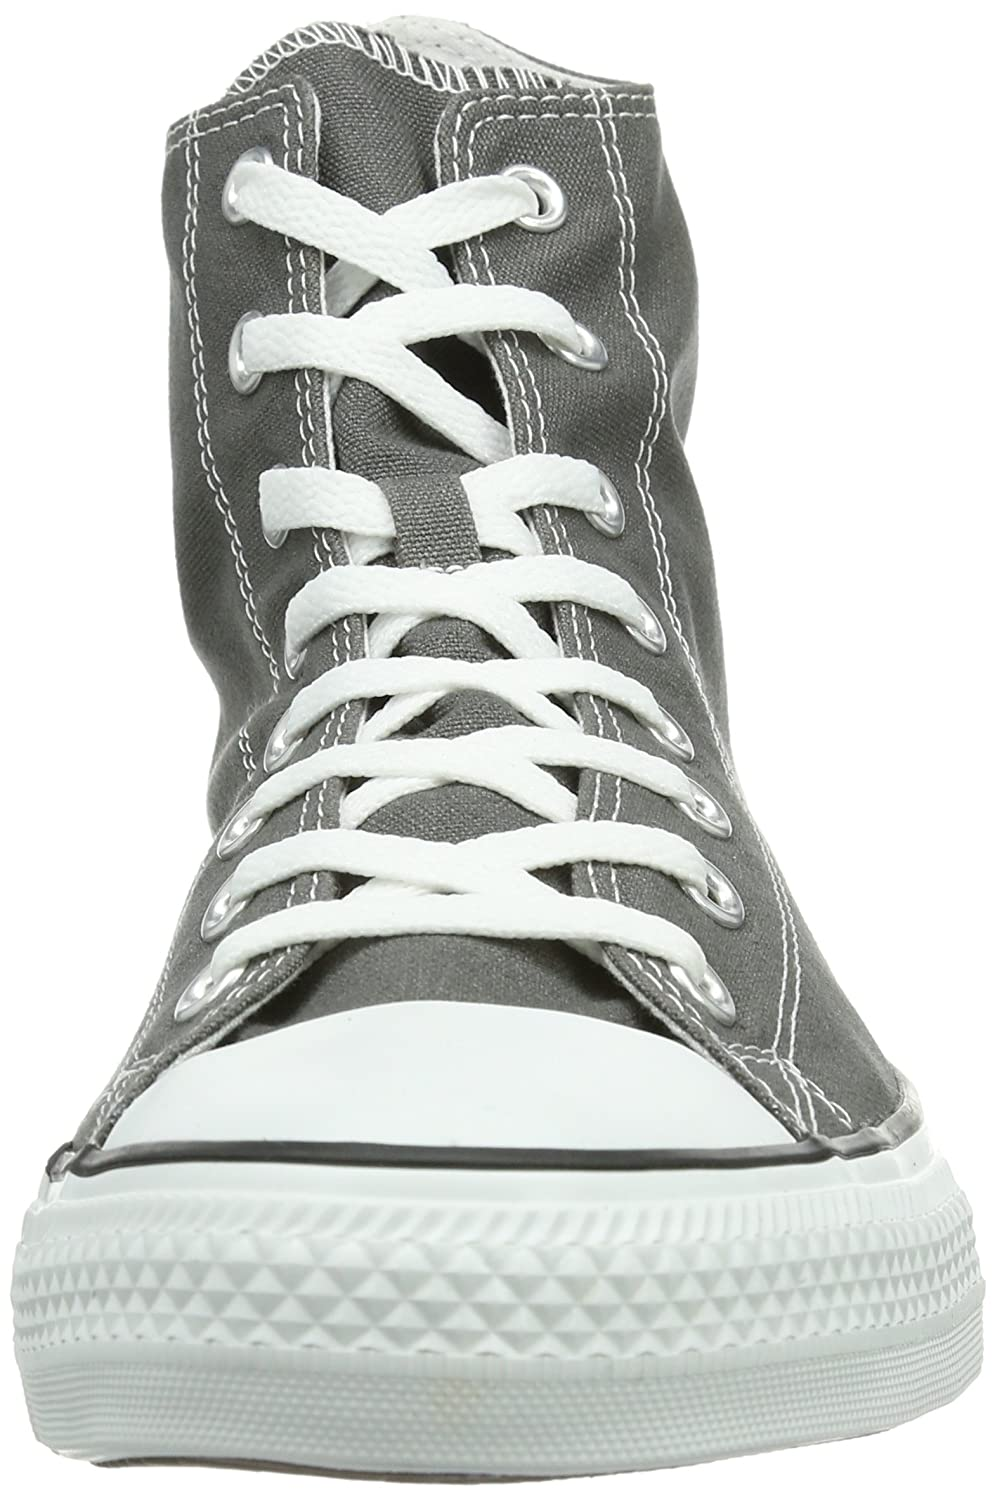 aabff8fa4c4c Converse Chuck Taylor All Star Season Hi Trainers  Amazon.co.uk  Shoes    Bags